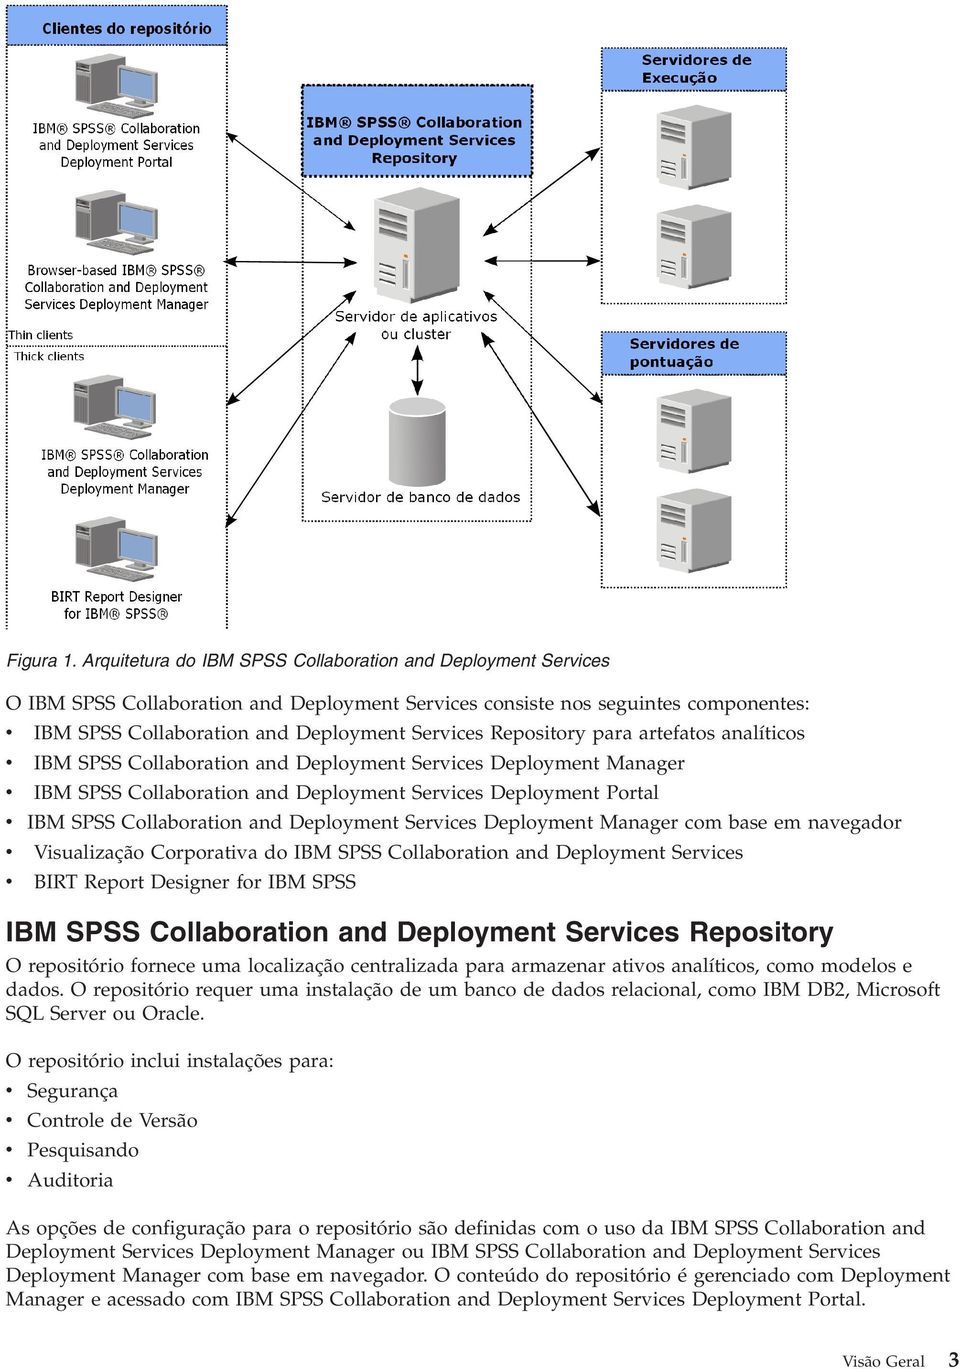 Repository para artefatos analíticos v IBM SPSS Collaboration and Deployment Services Deployment Manager v IBM SPSS Collaboration and Deployment Services Deployment Portal v IBM SPSS Collaboration